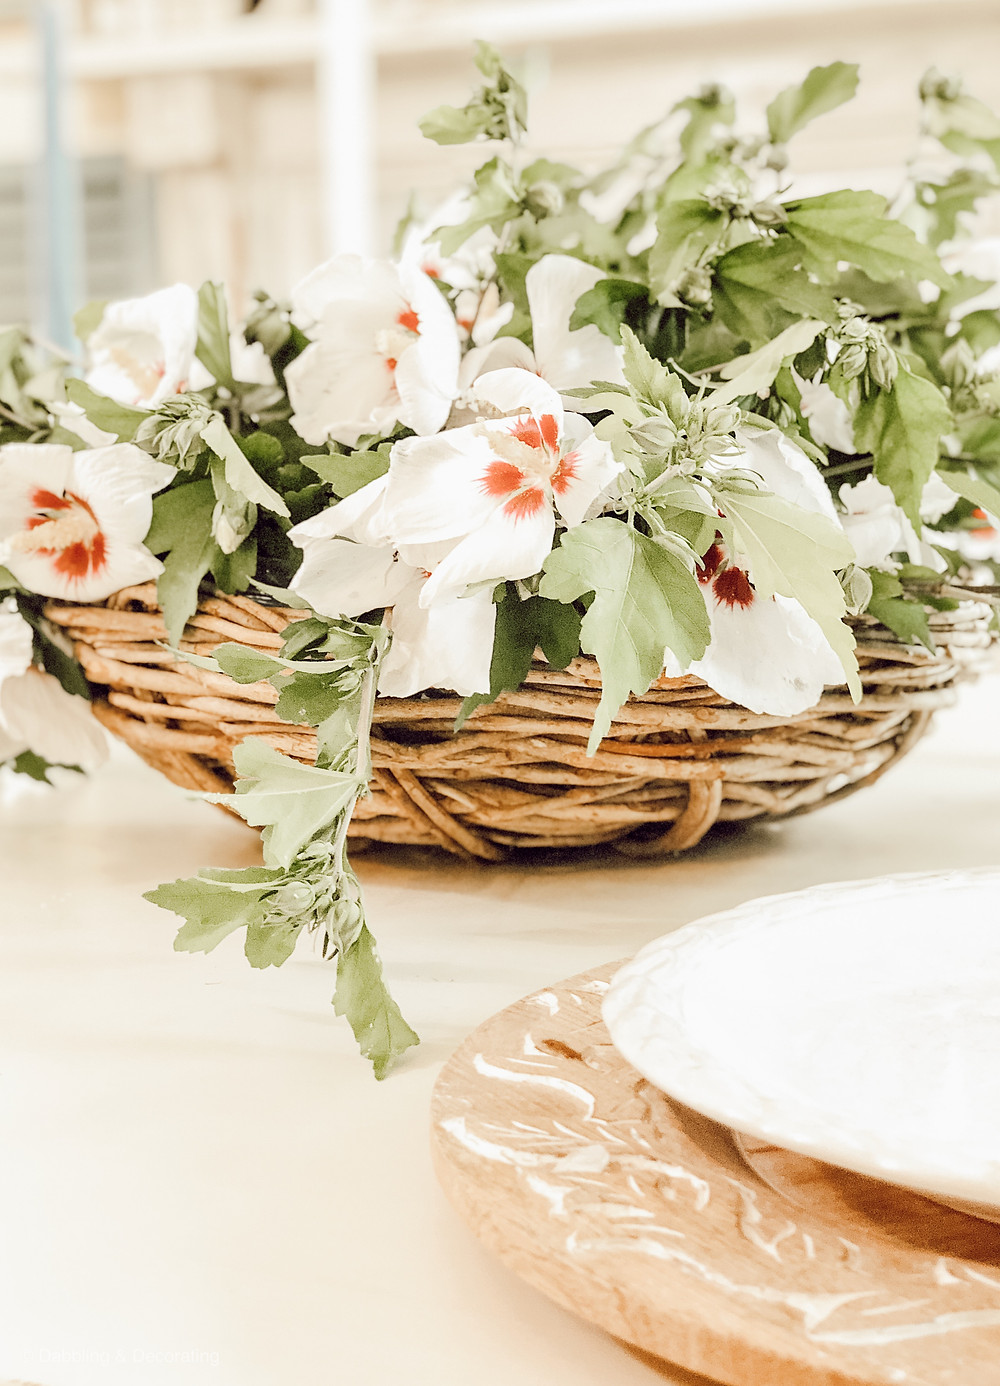 Simple Weekend Rose of Sharon Centerpiece